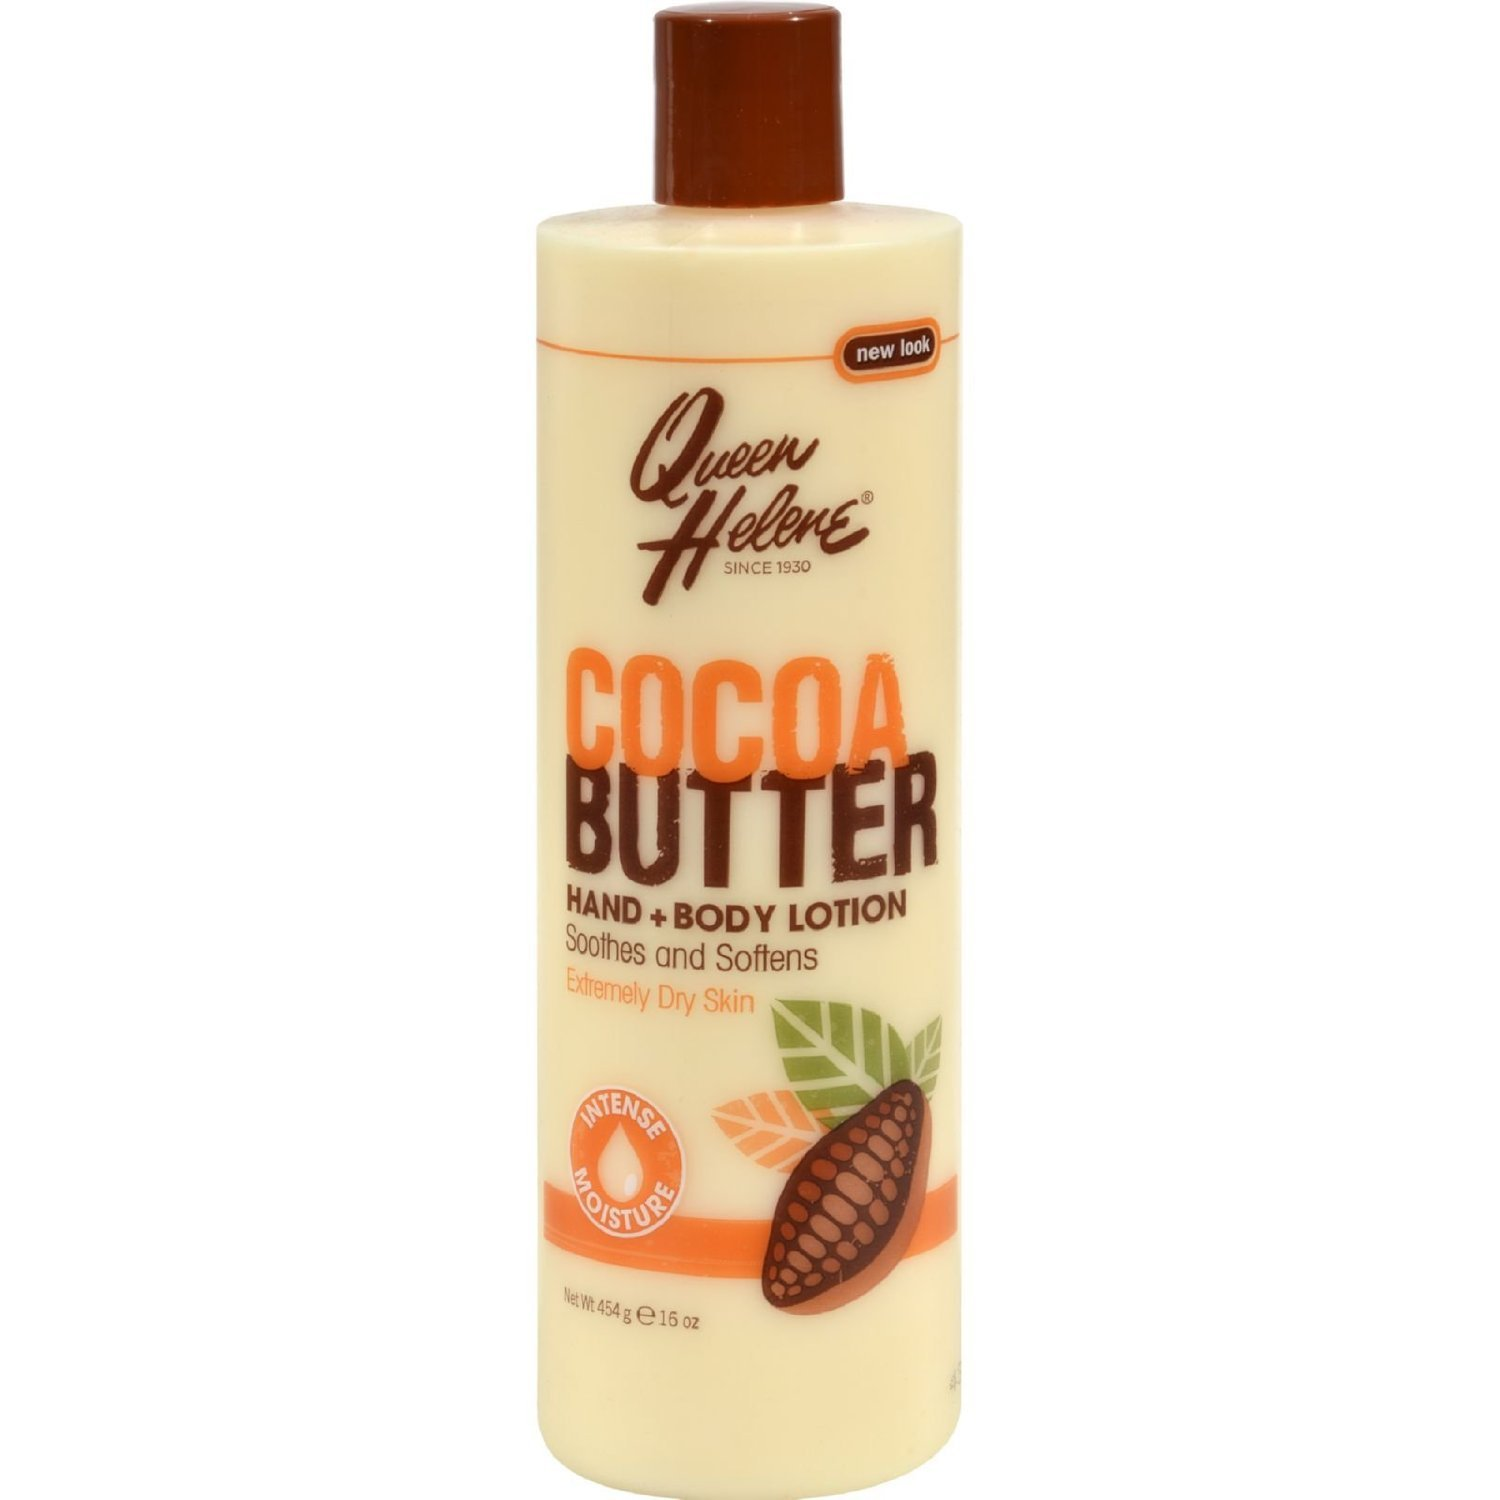 Queen Helene Lotion 16oz Cocoa Butter Hand & Body (3 Pack)